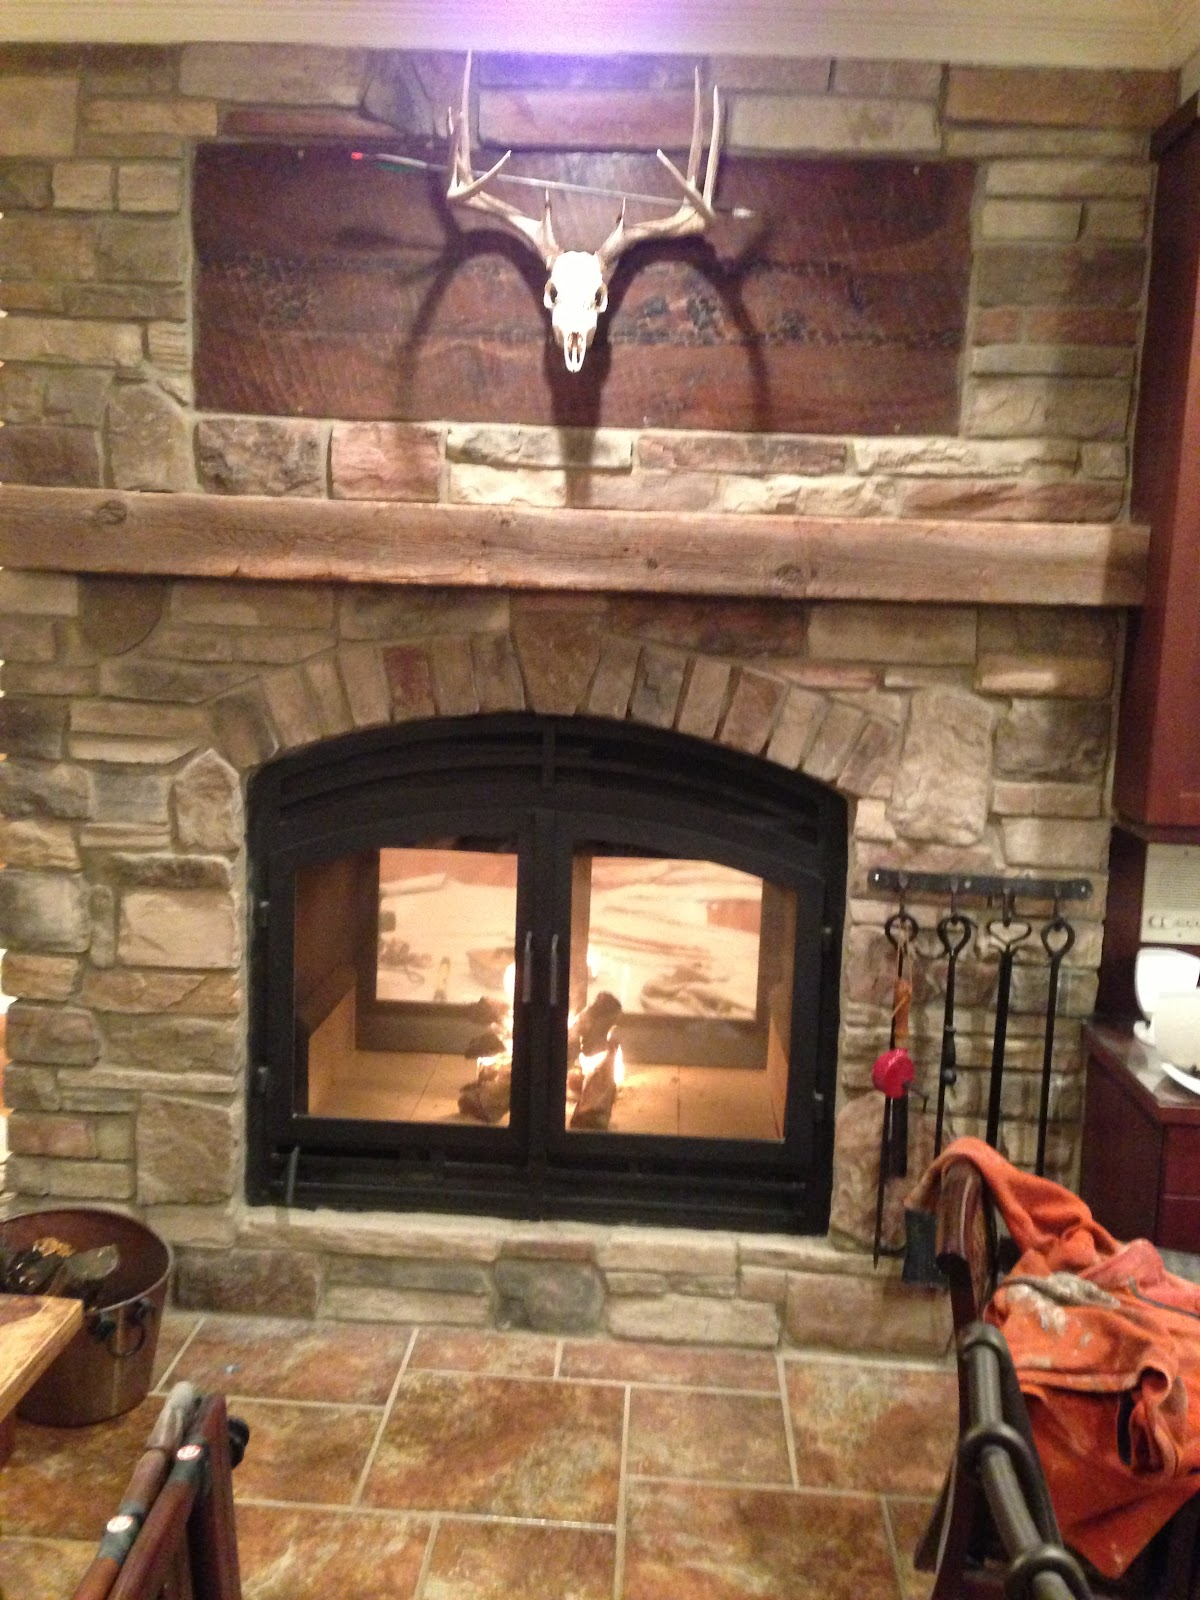 Acucraft Fireplaces: See Through Wood Burning Fireplace